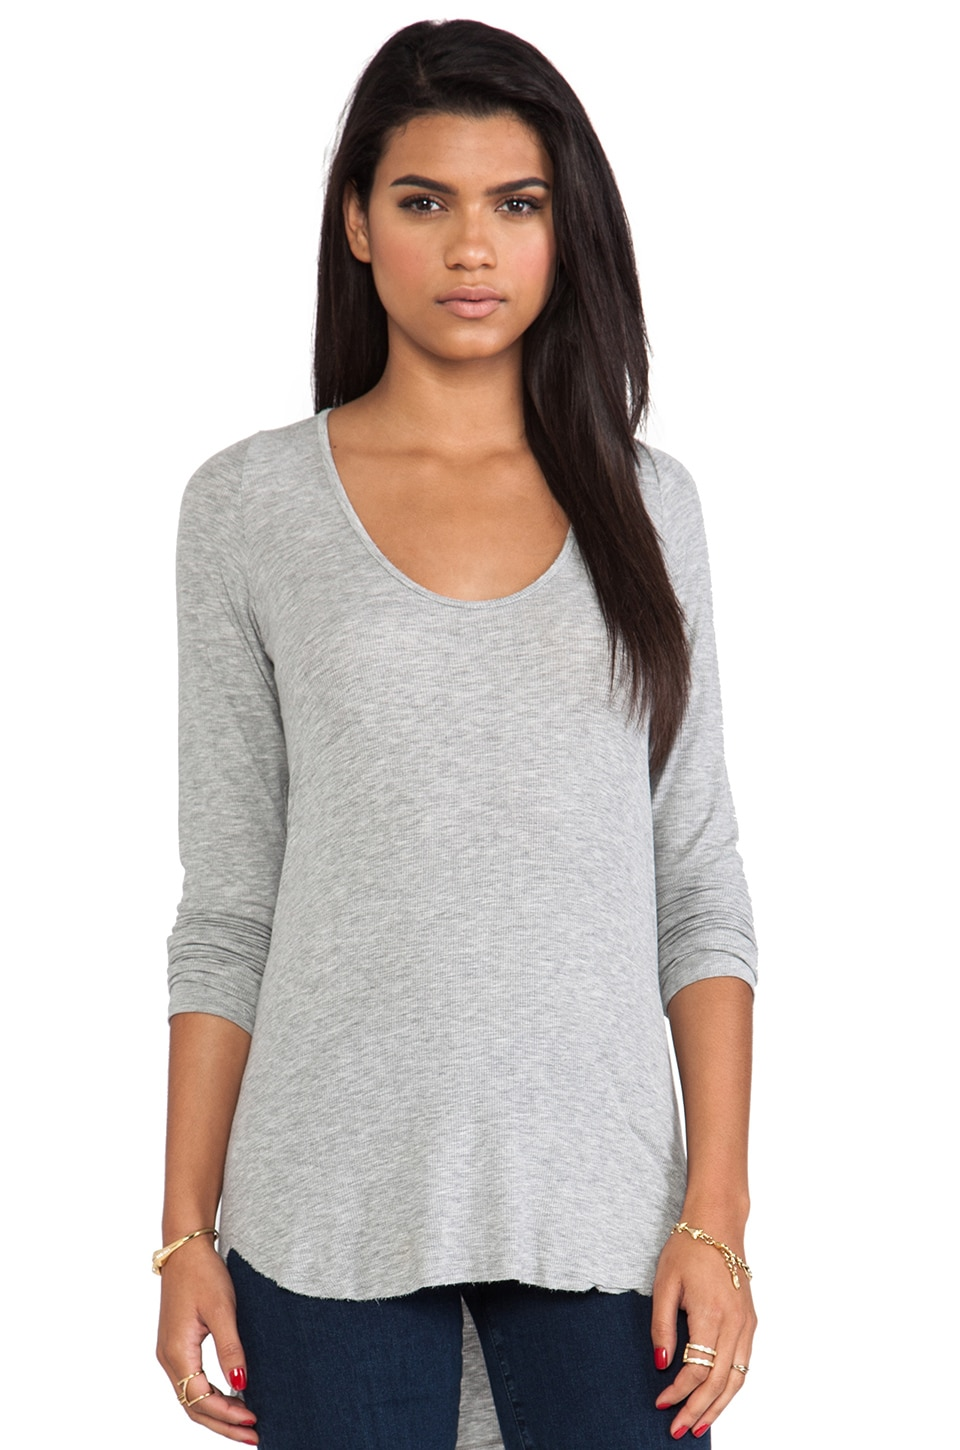 dolan Long Sleeve Tee in Silver